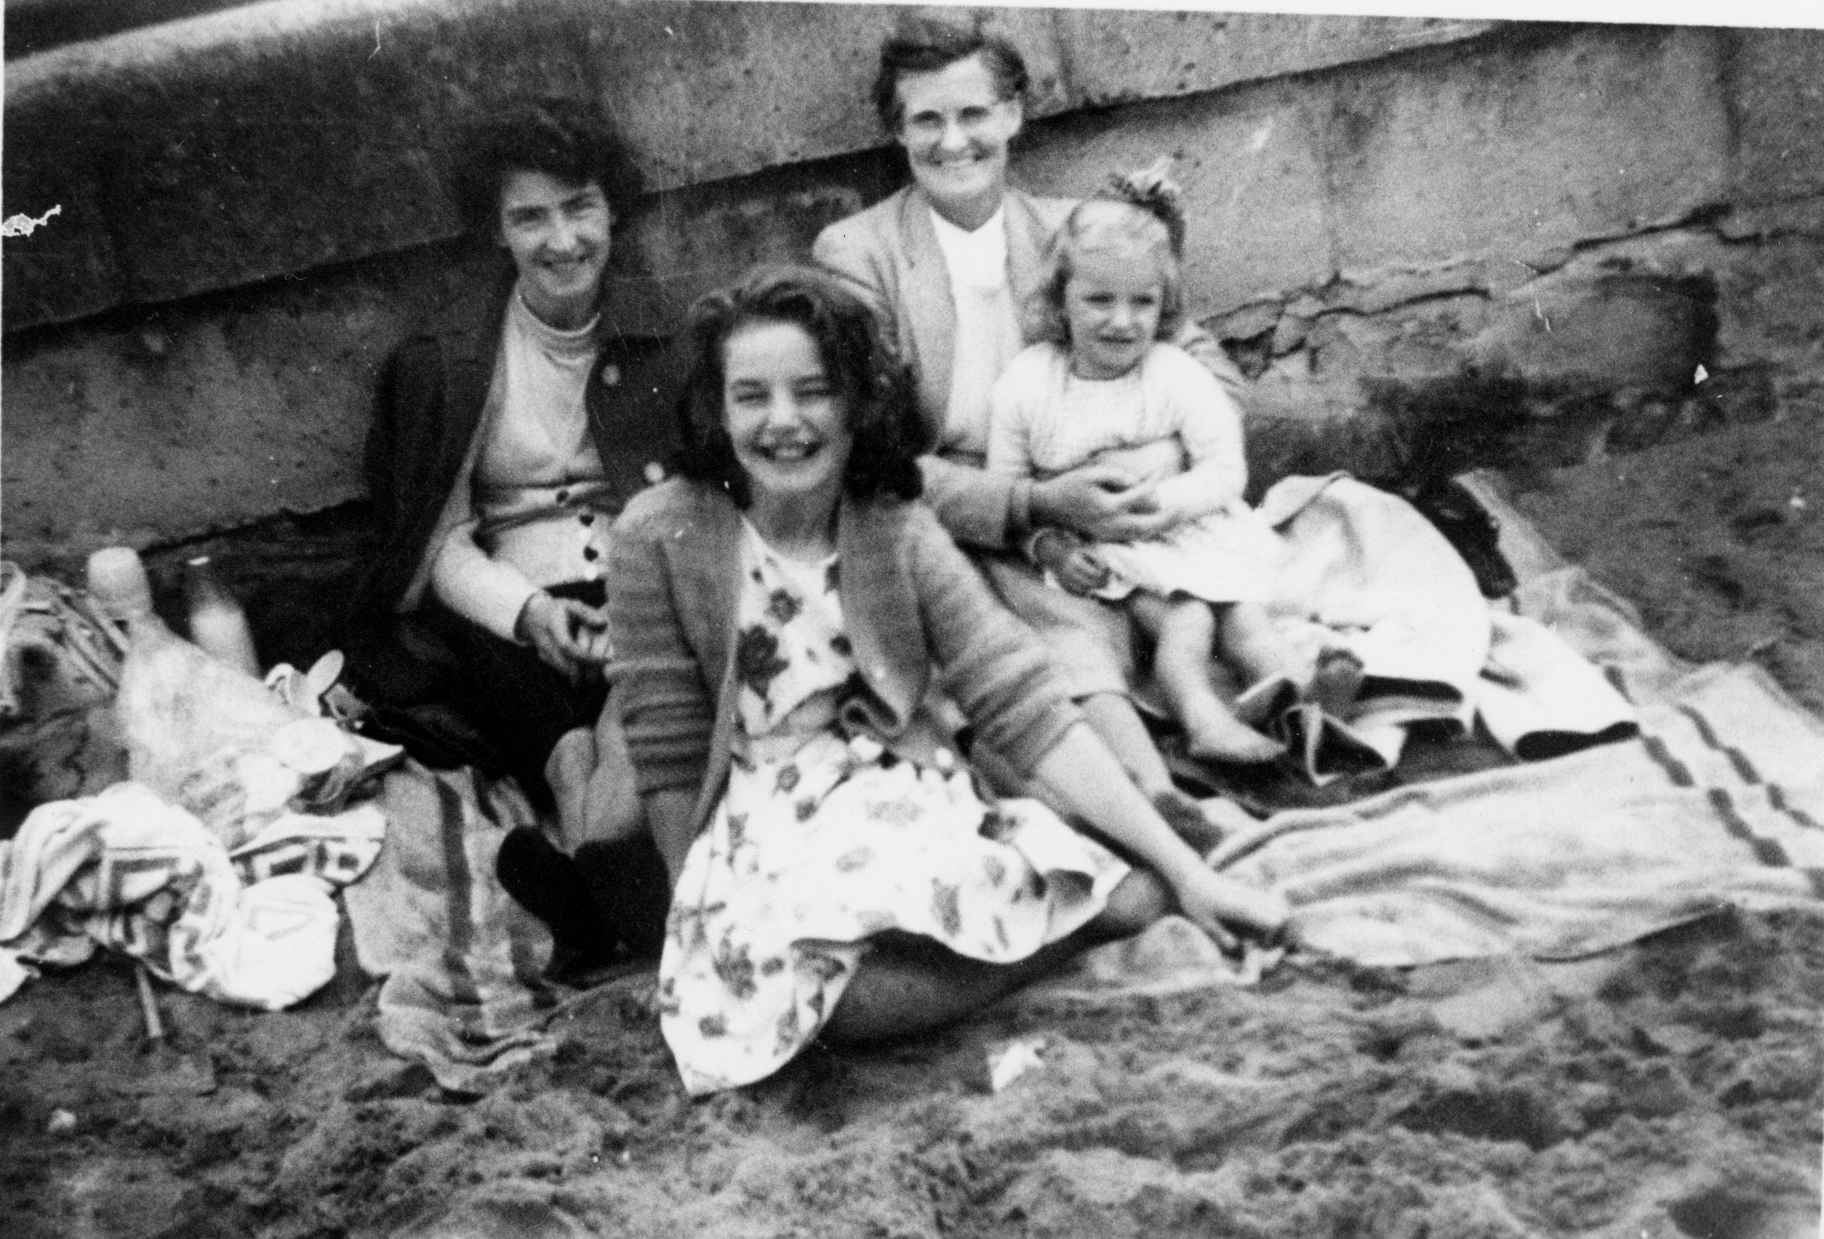 Family Picnic At Portobello Beach 1950s